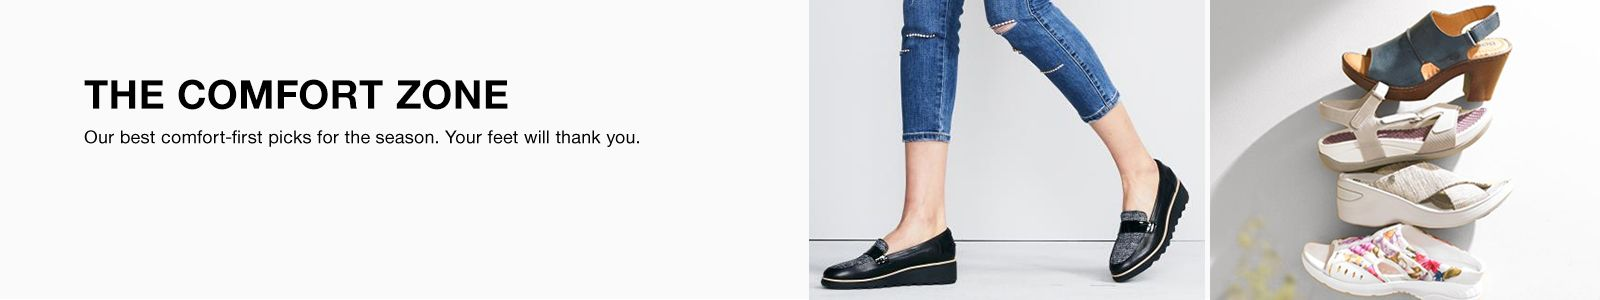 The Comfort Zone, Our best comfort-first picks for the season, Your feet will thank you